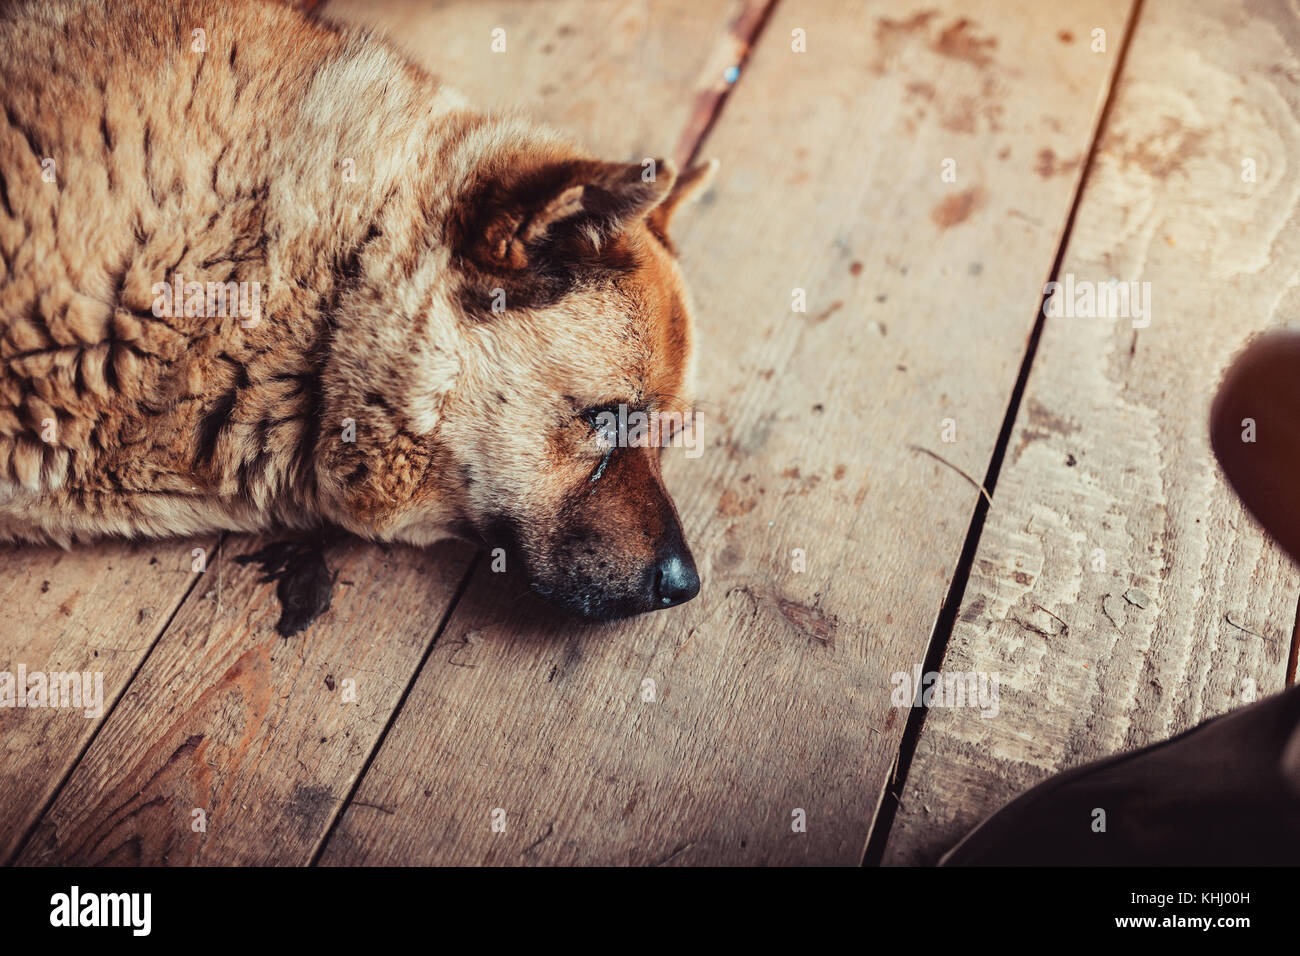 Old dog sleeping on floor - Stock Image